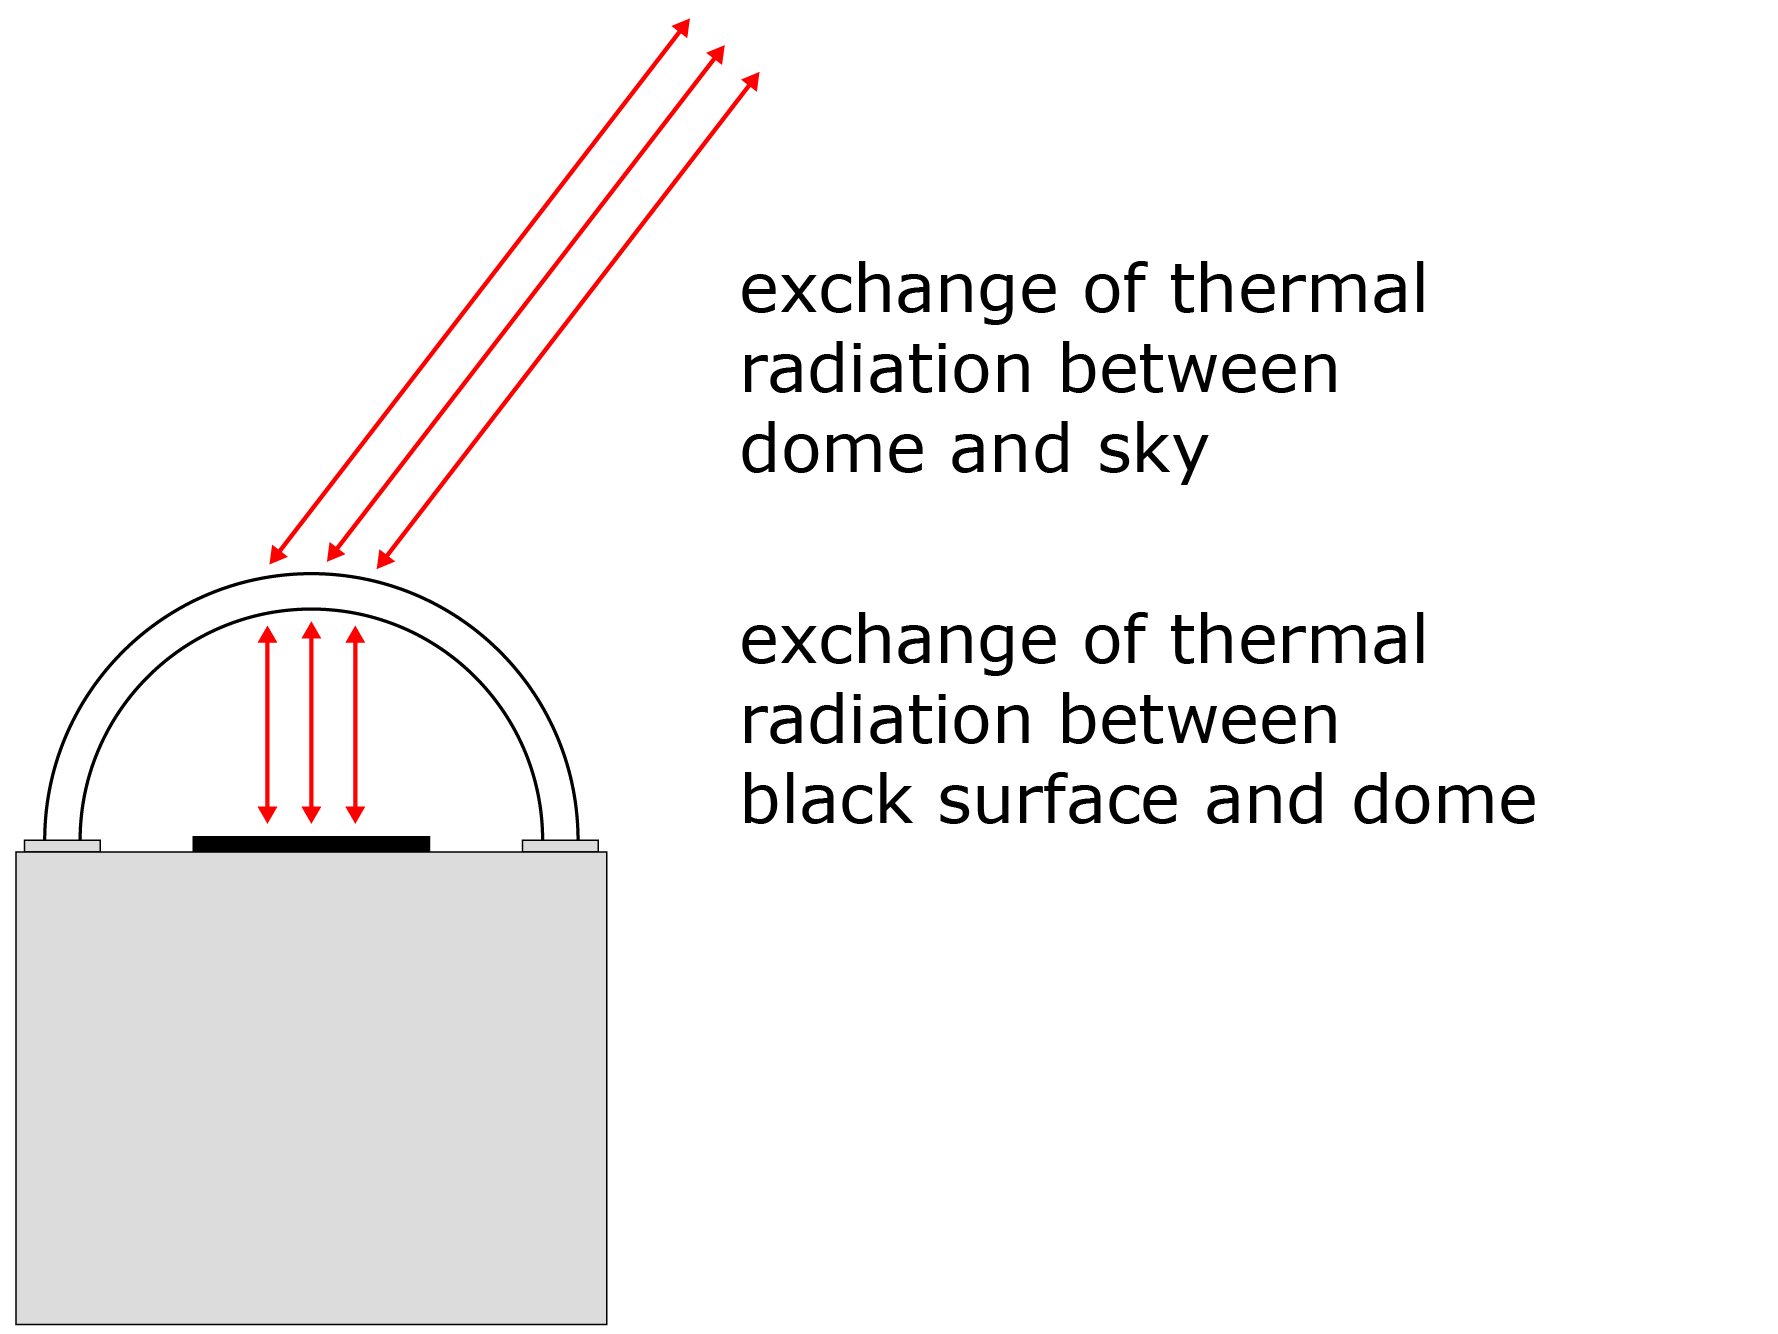 an illustration of the exchange of thermal radiation between the sky and the dome of a pyranometer and between the dome and the black sensor surface